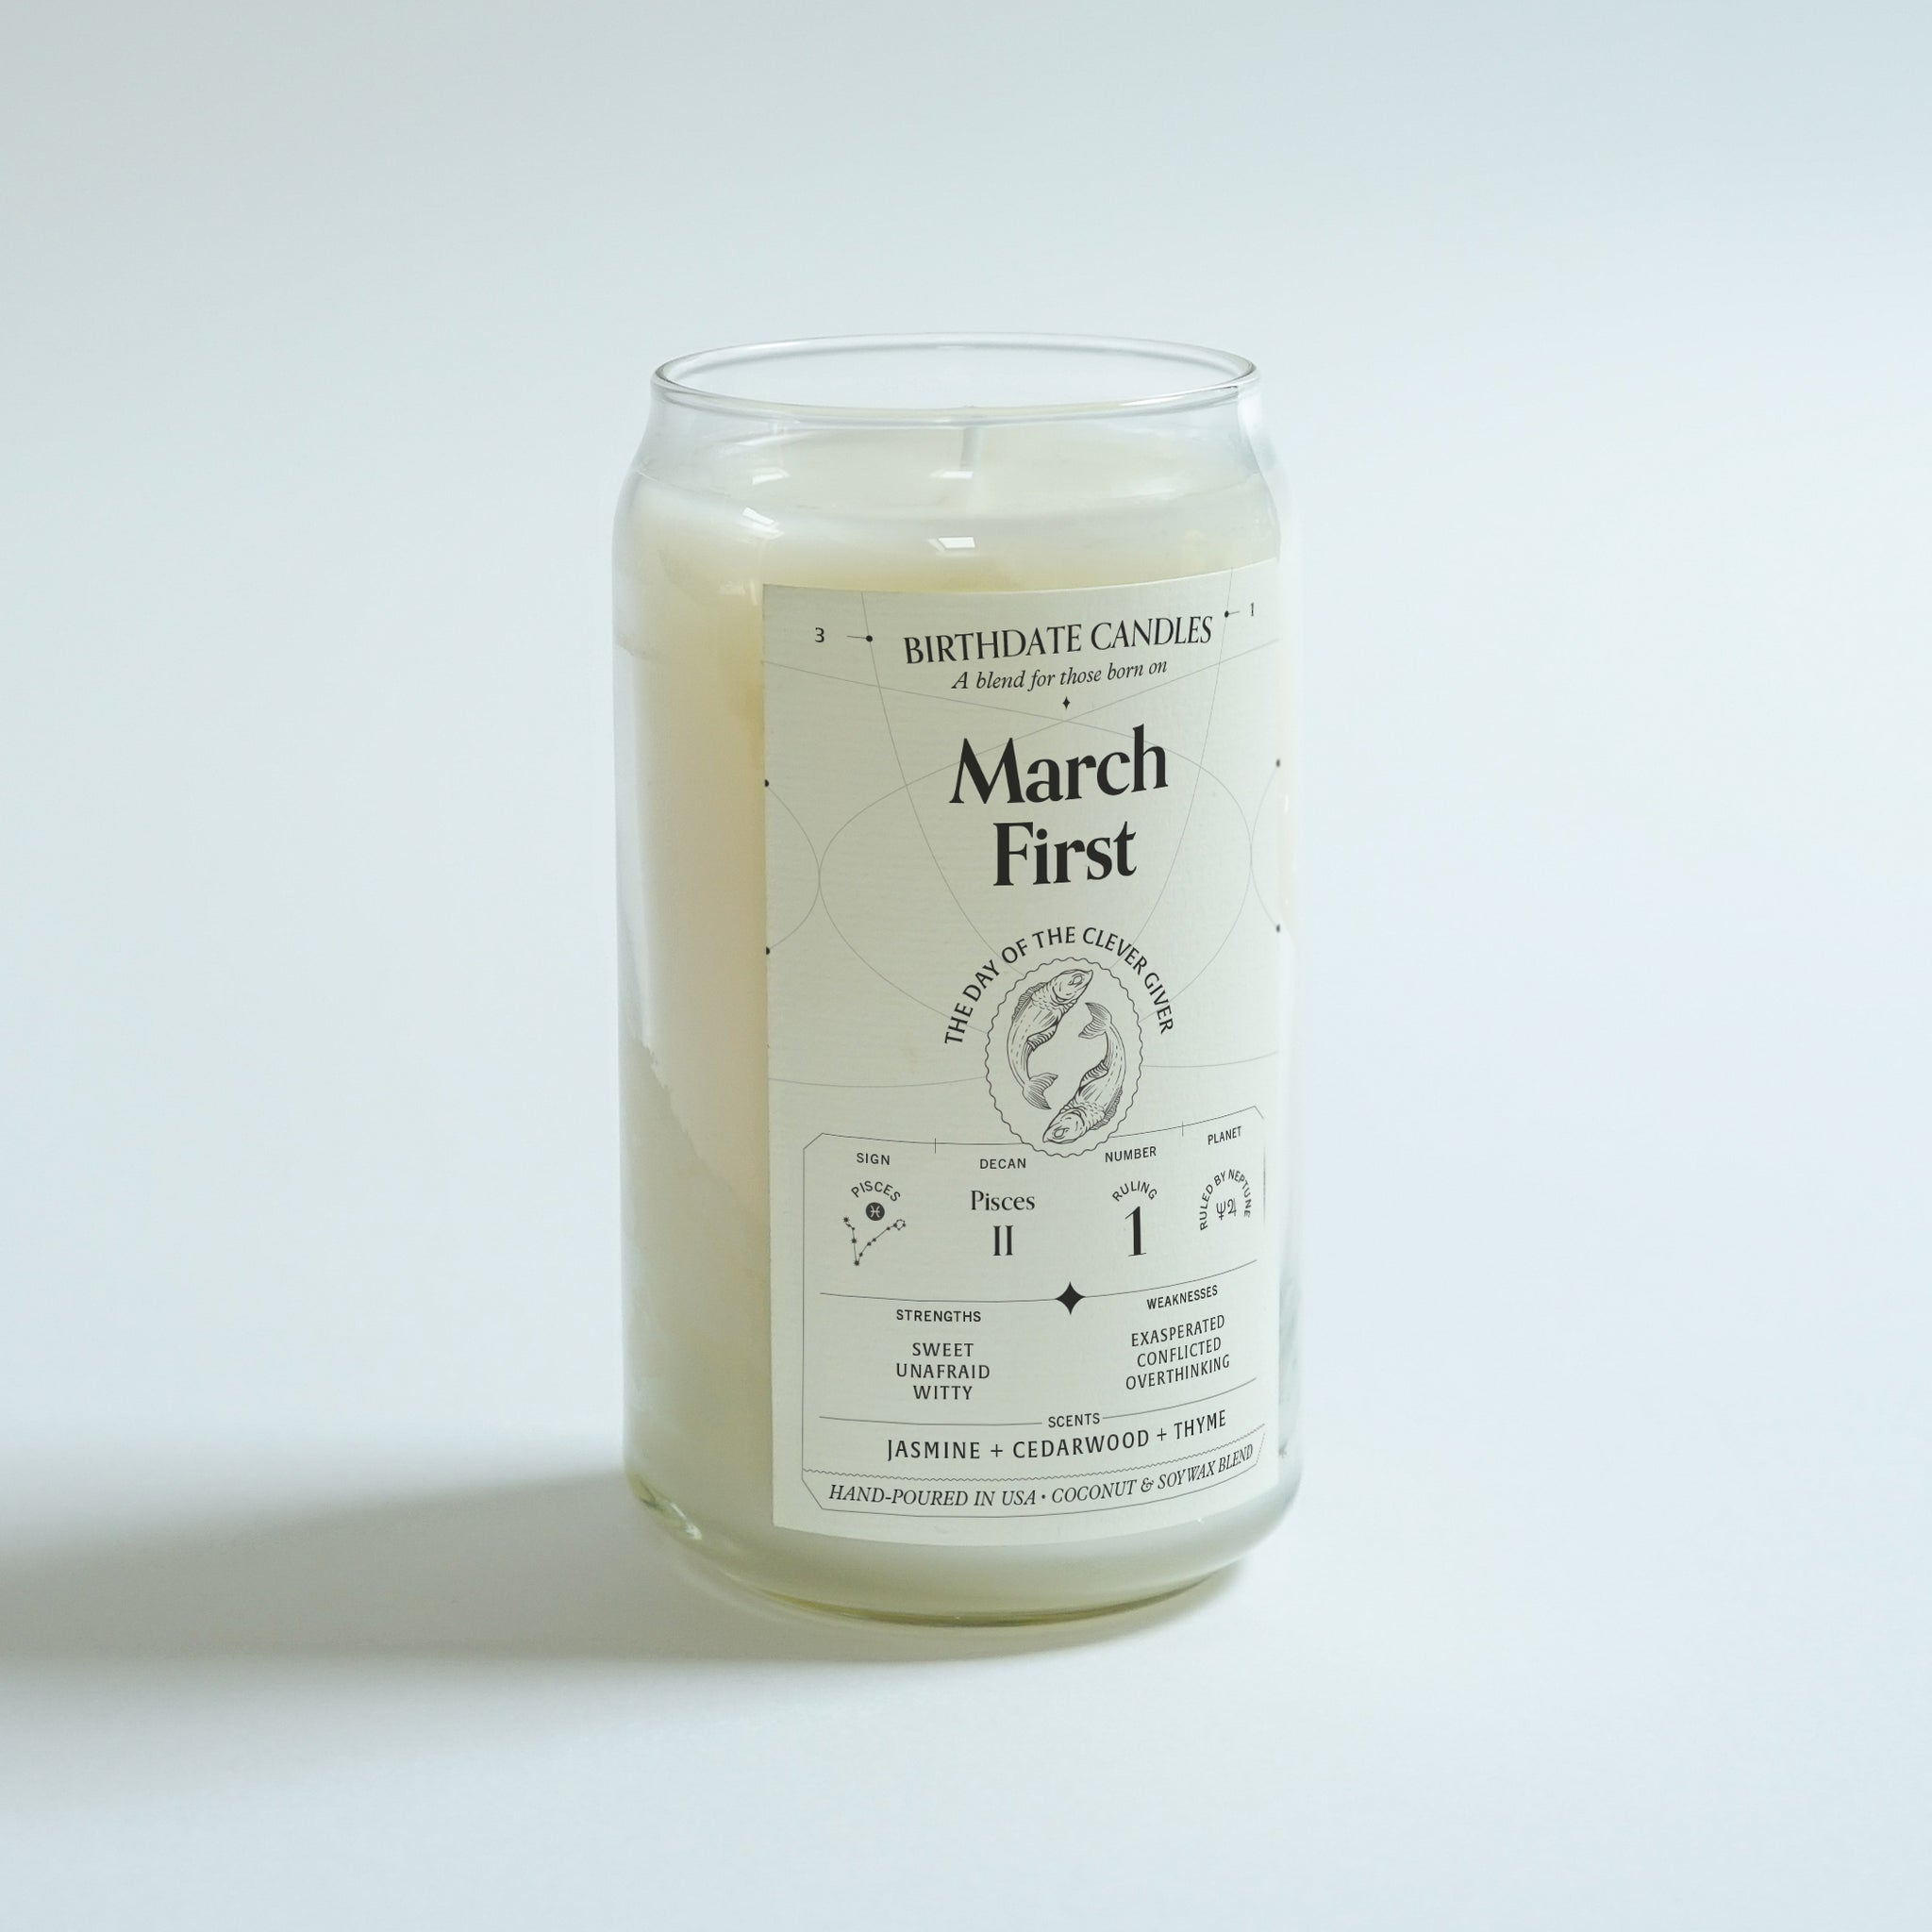 The March First Candle